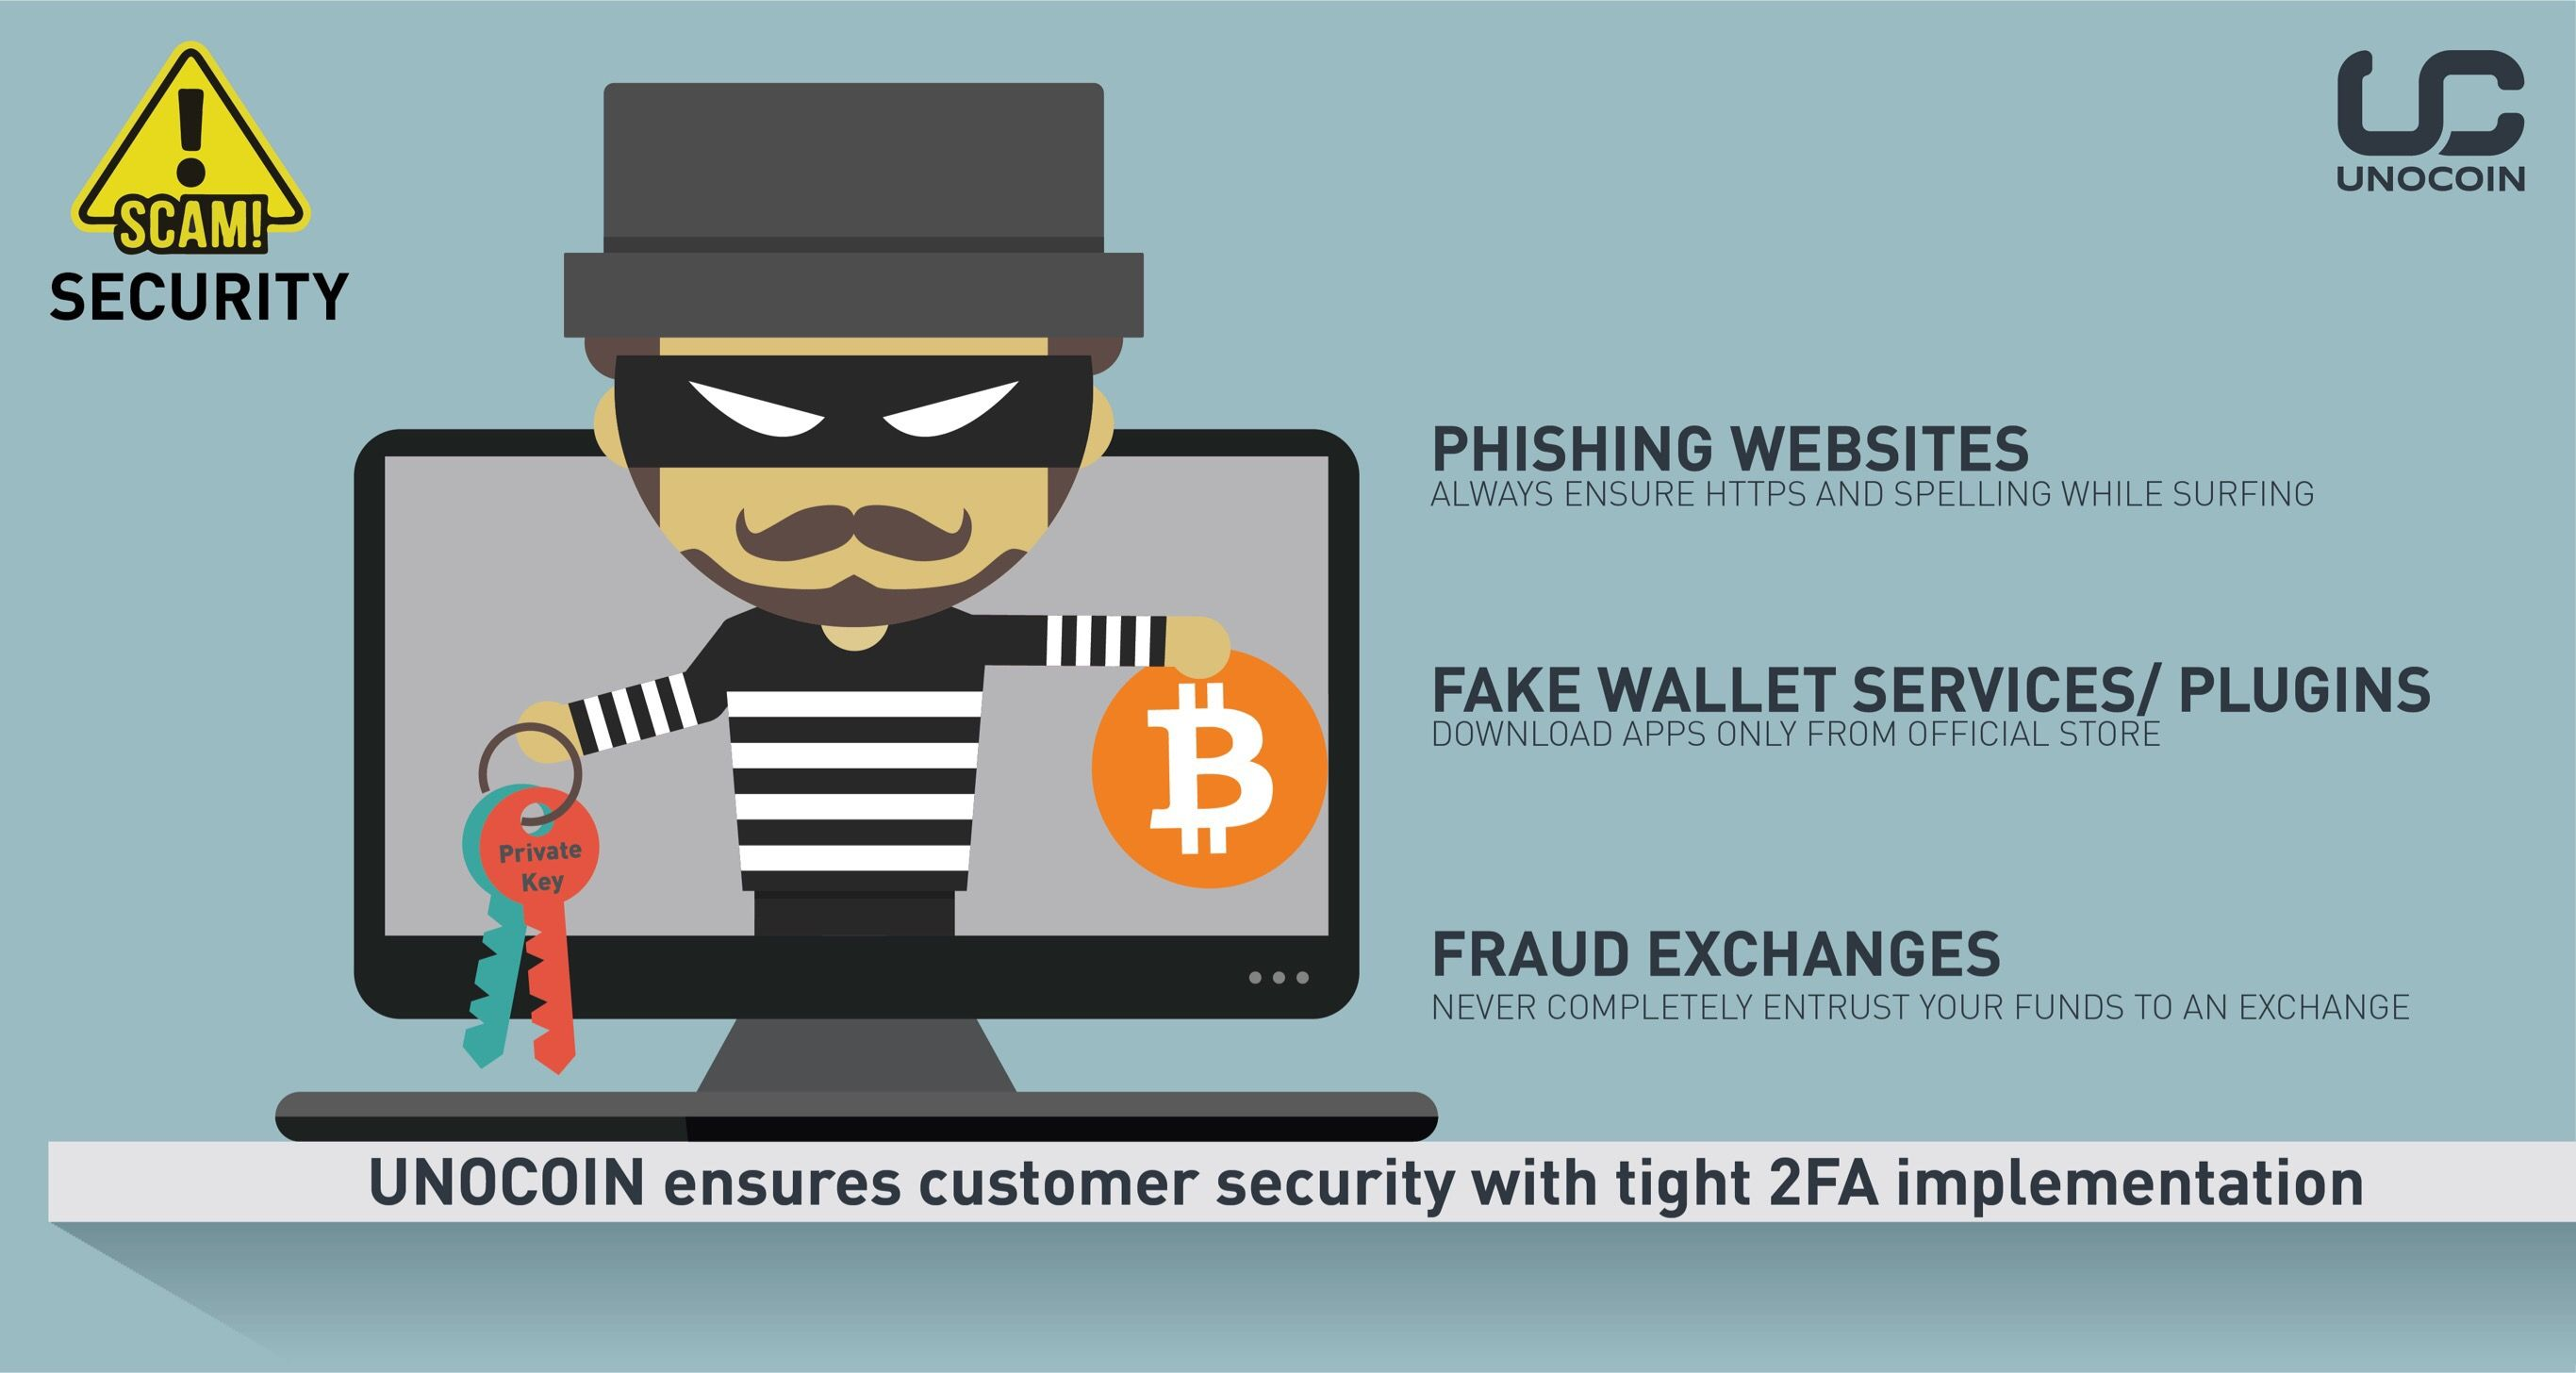 .Unocoin ensures customer security with tight 2Factor